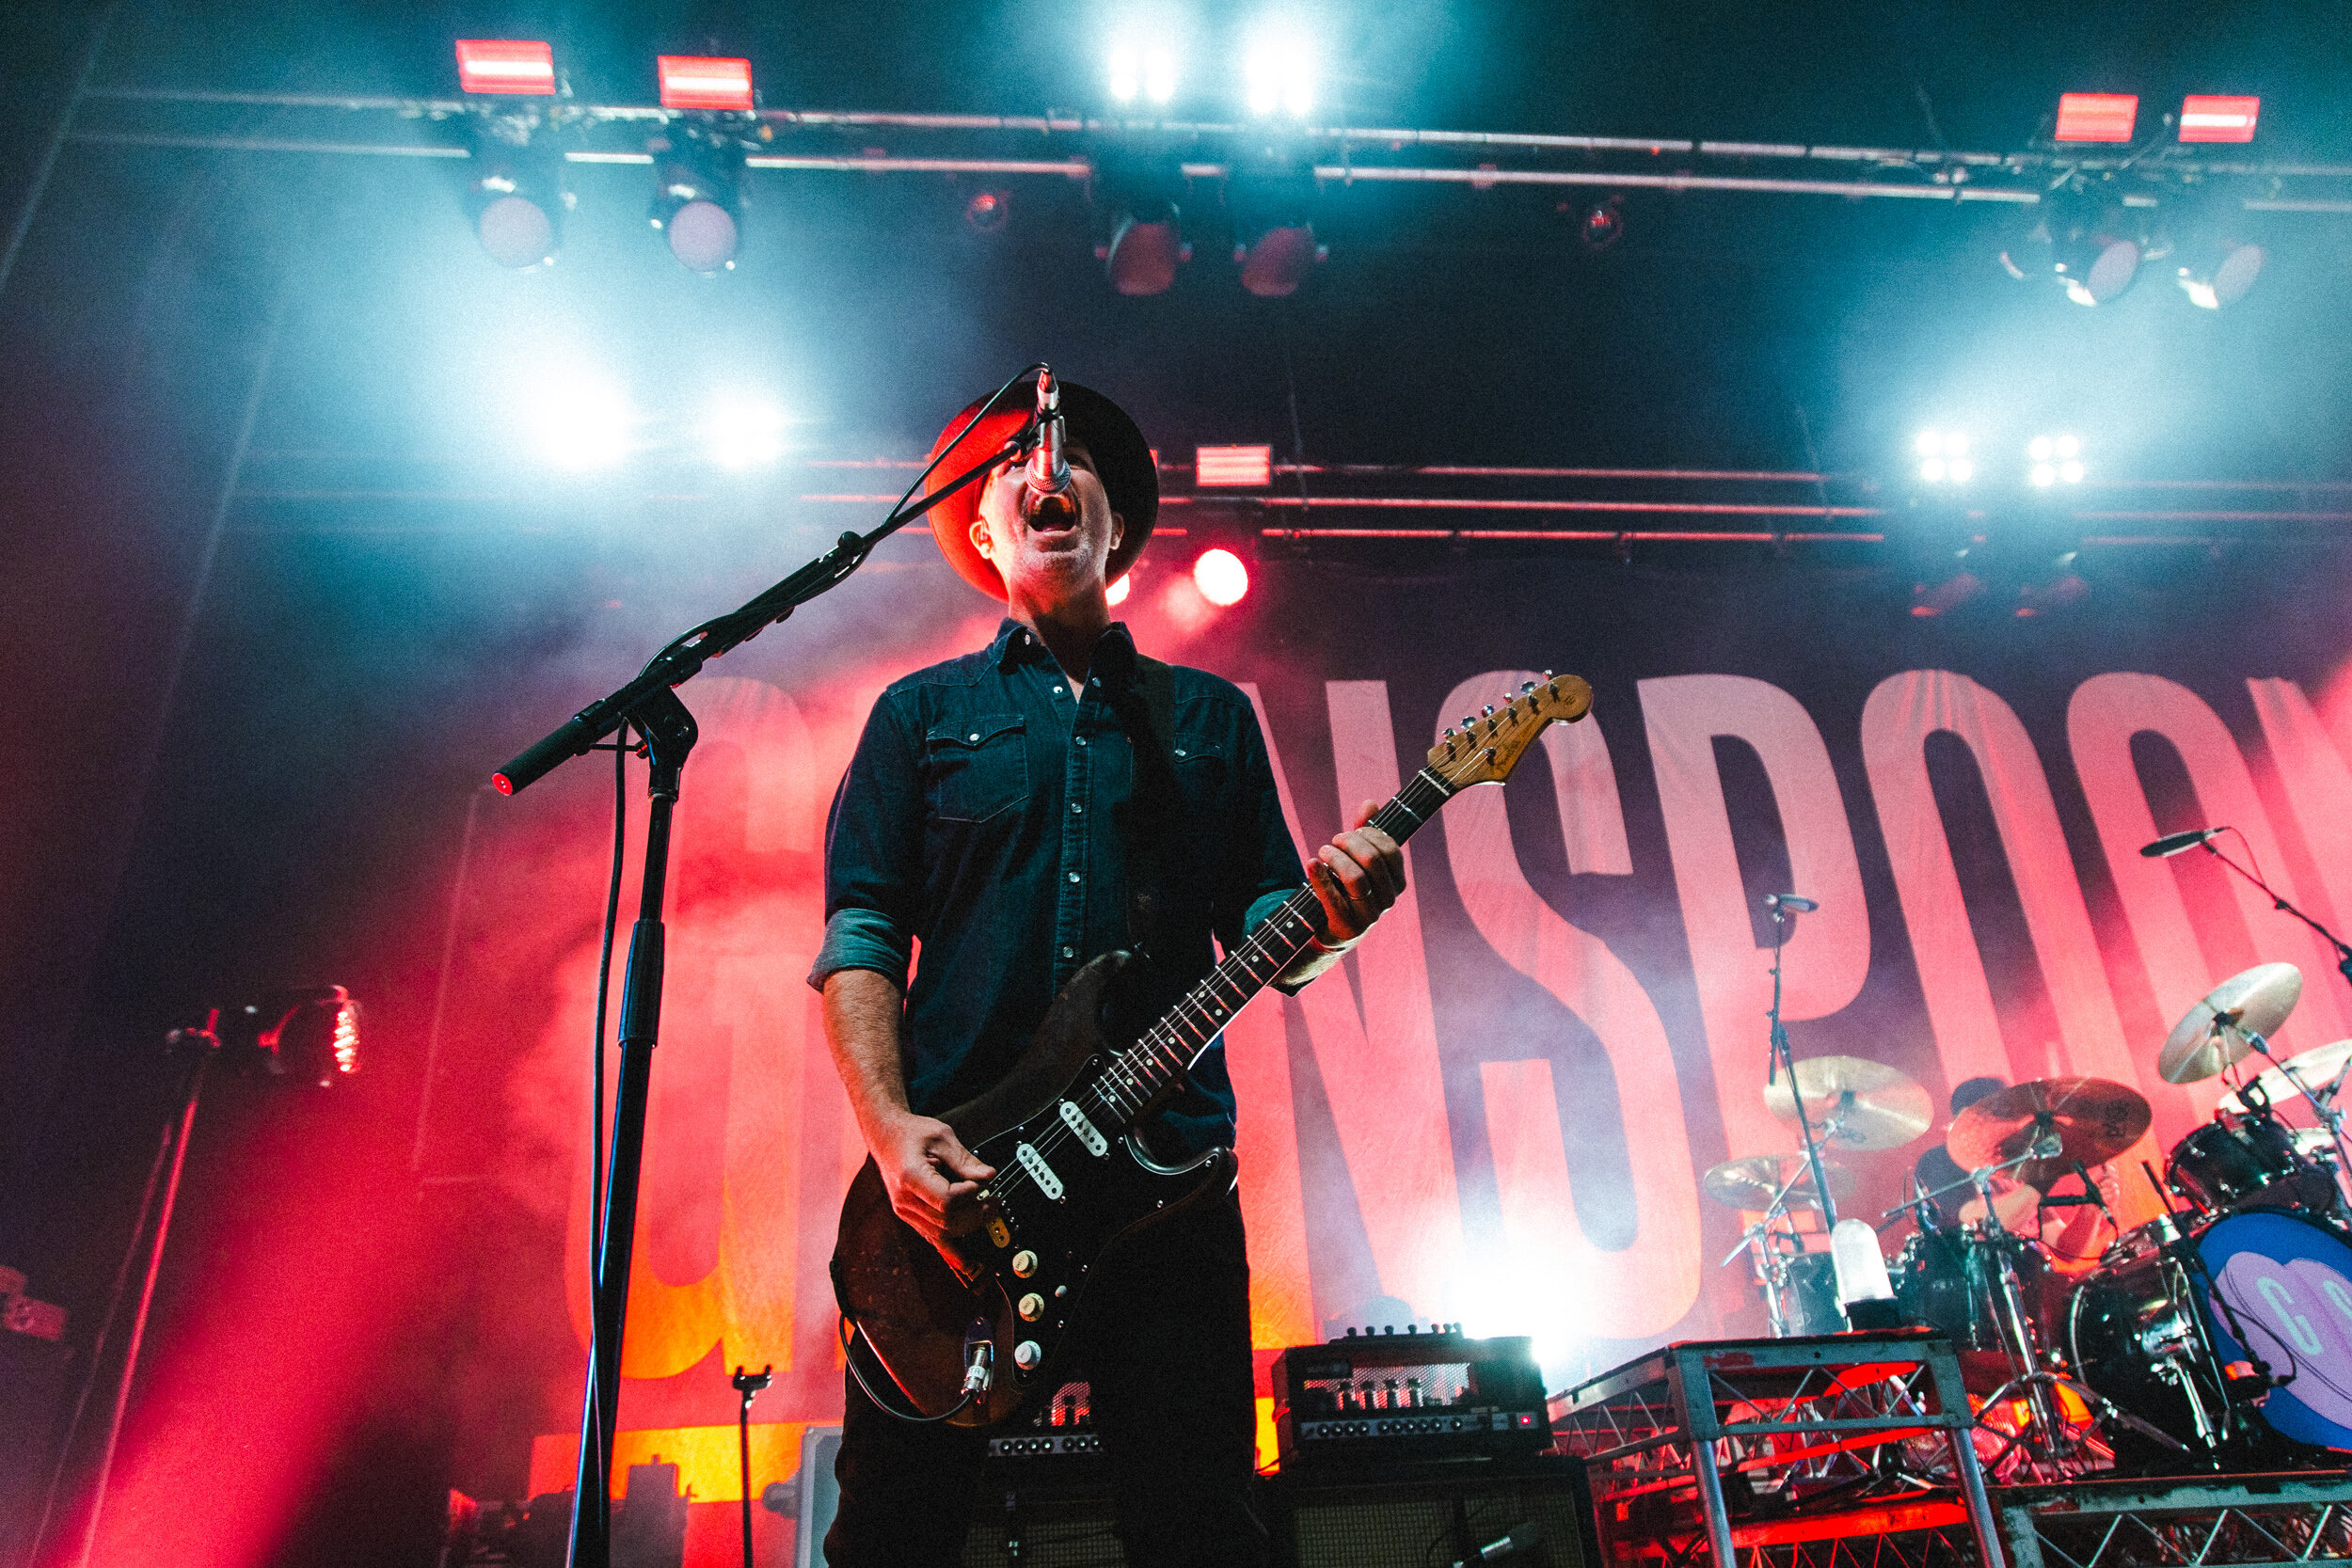 Grinspoon_Forum-3306.jpg